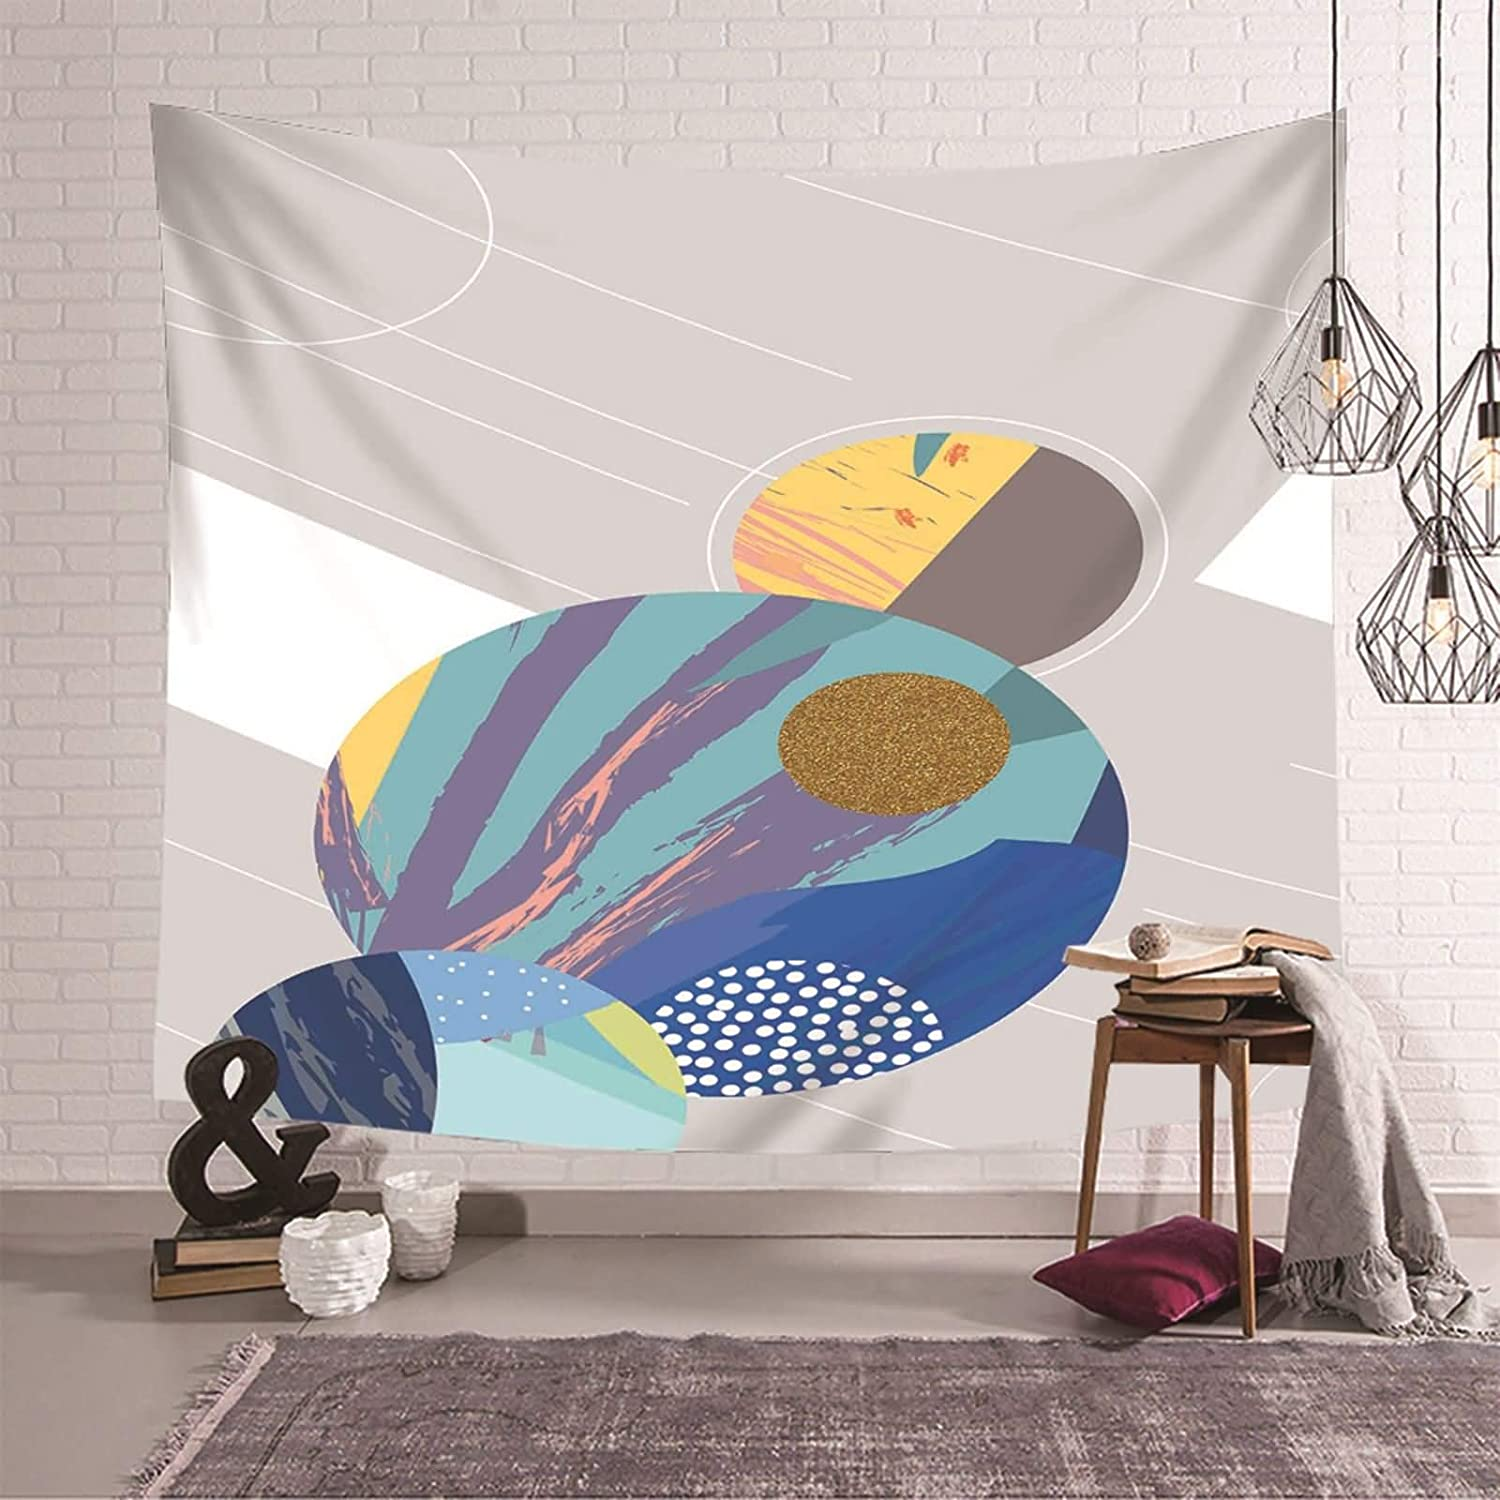 Gnzoe Wall gift Tapestry Holiday Home Grey Decor Abstr Blue Polyester Popularity